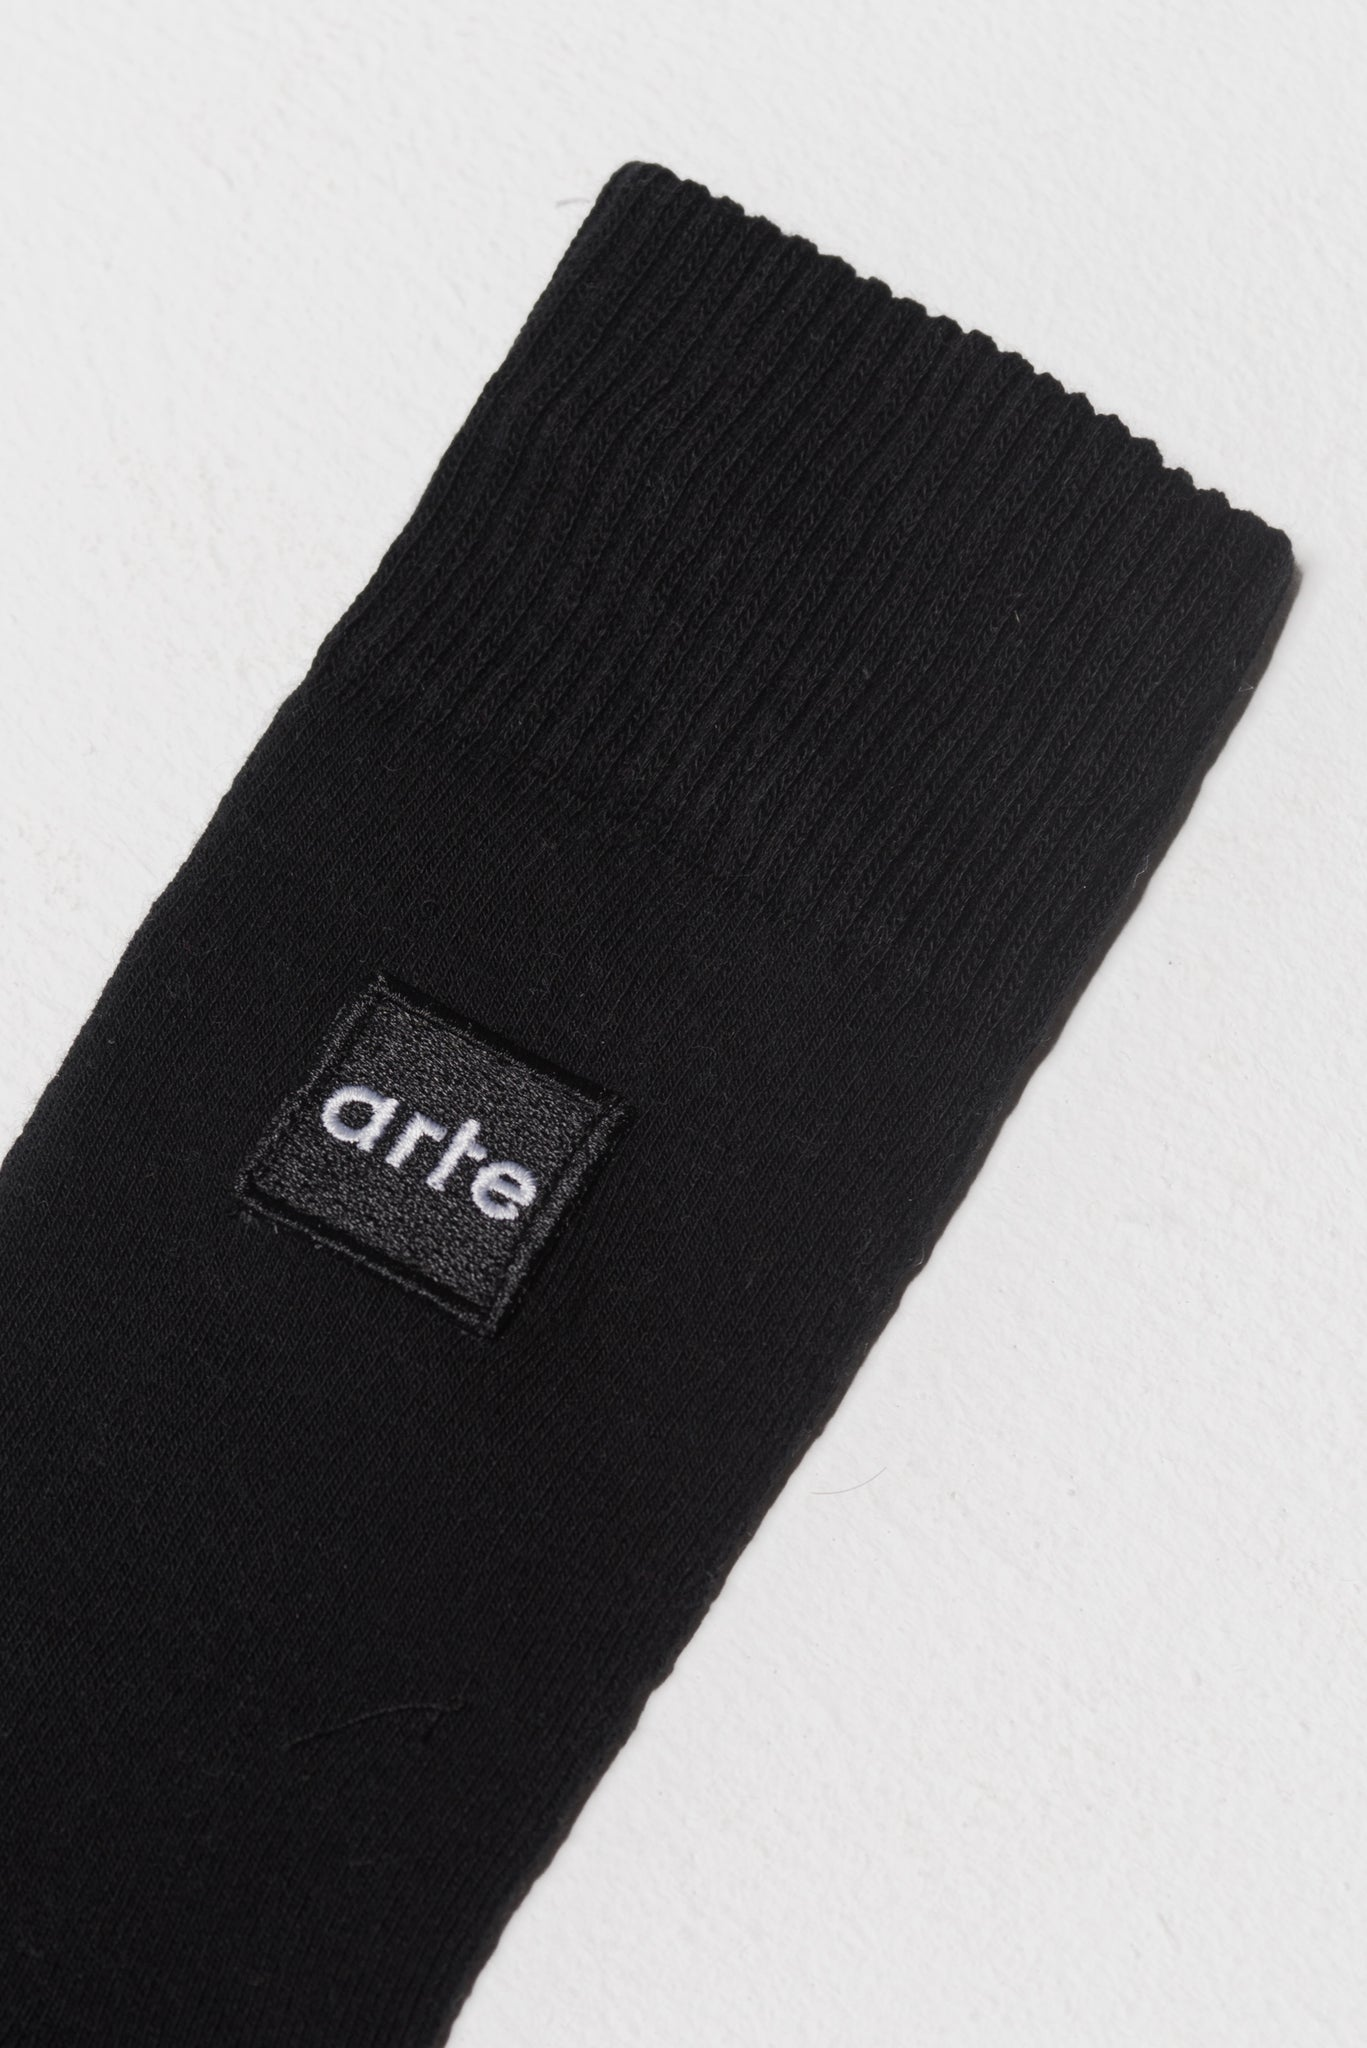 Paly Patch Sock Black